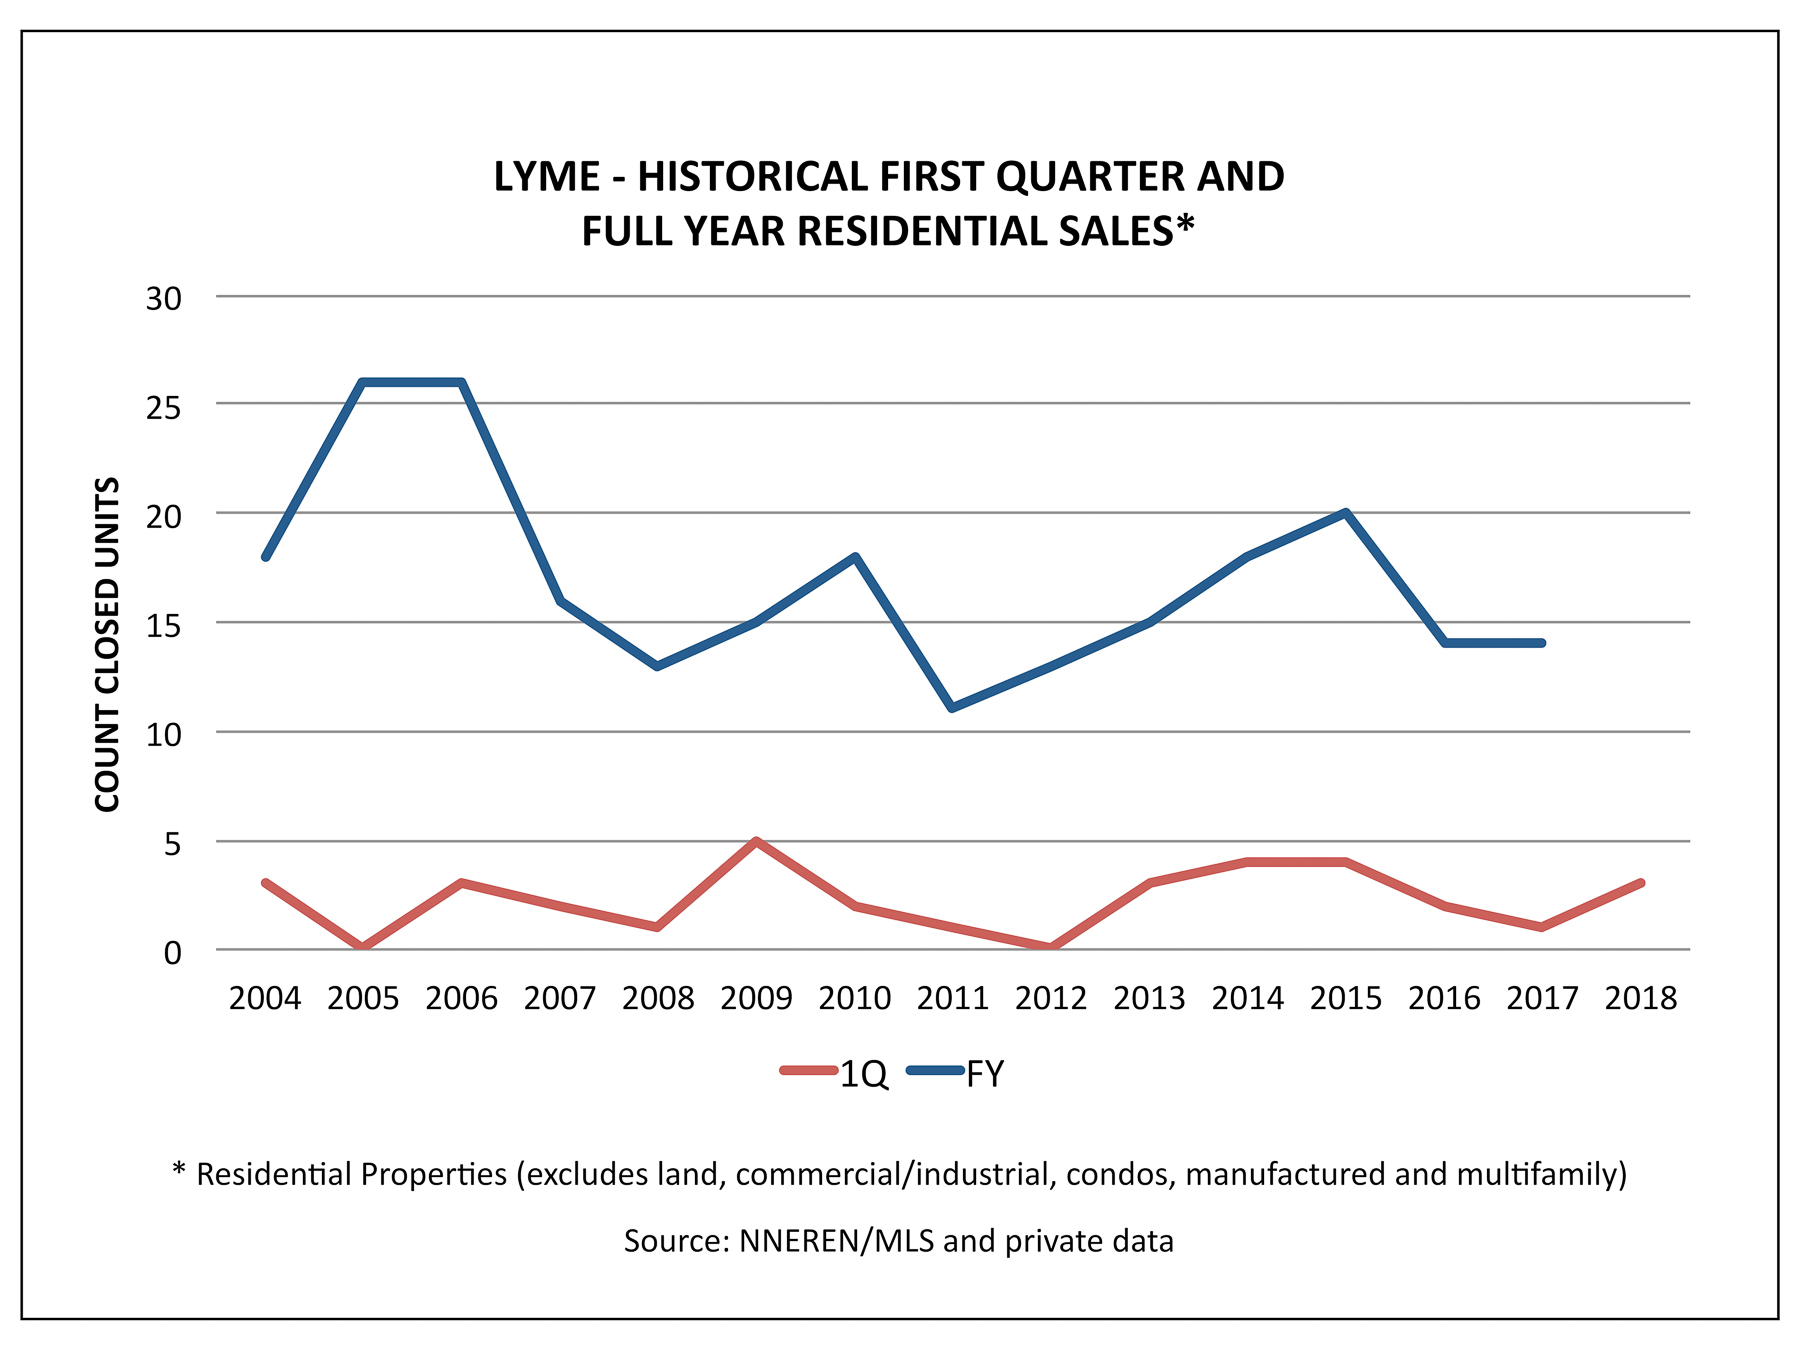 Lyme NH Real Estate - 1Q 2018 and FY Historical Sales